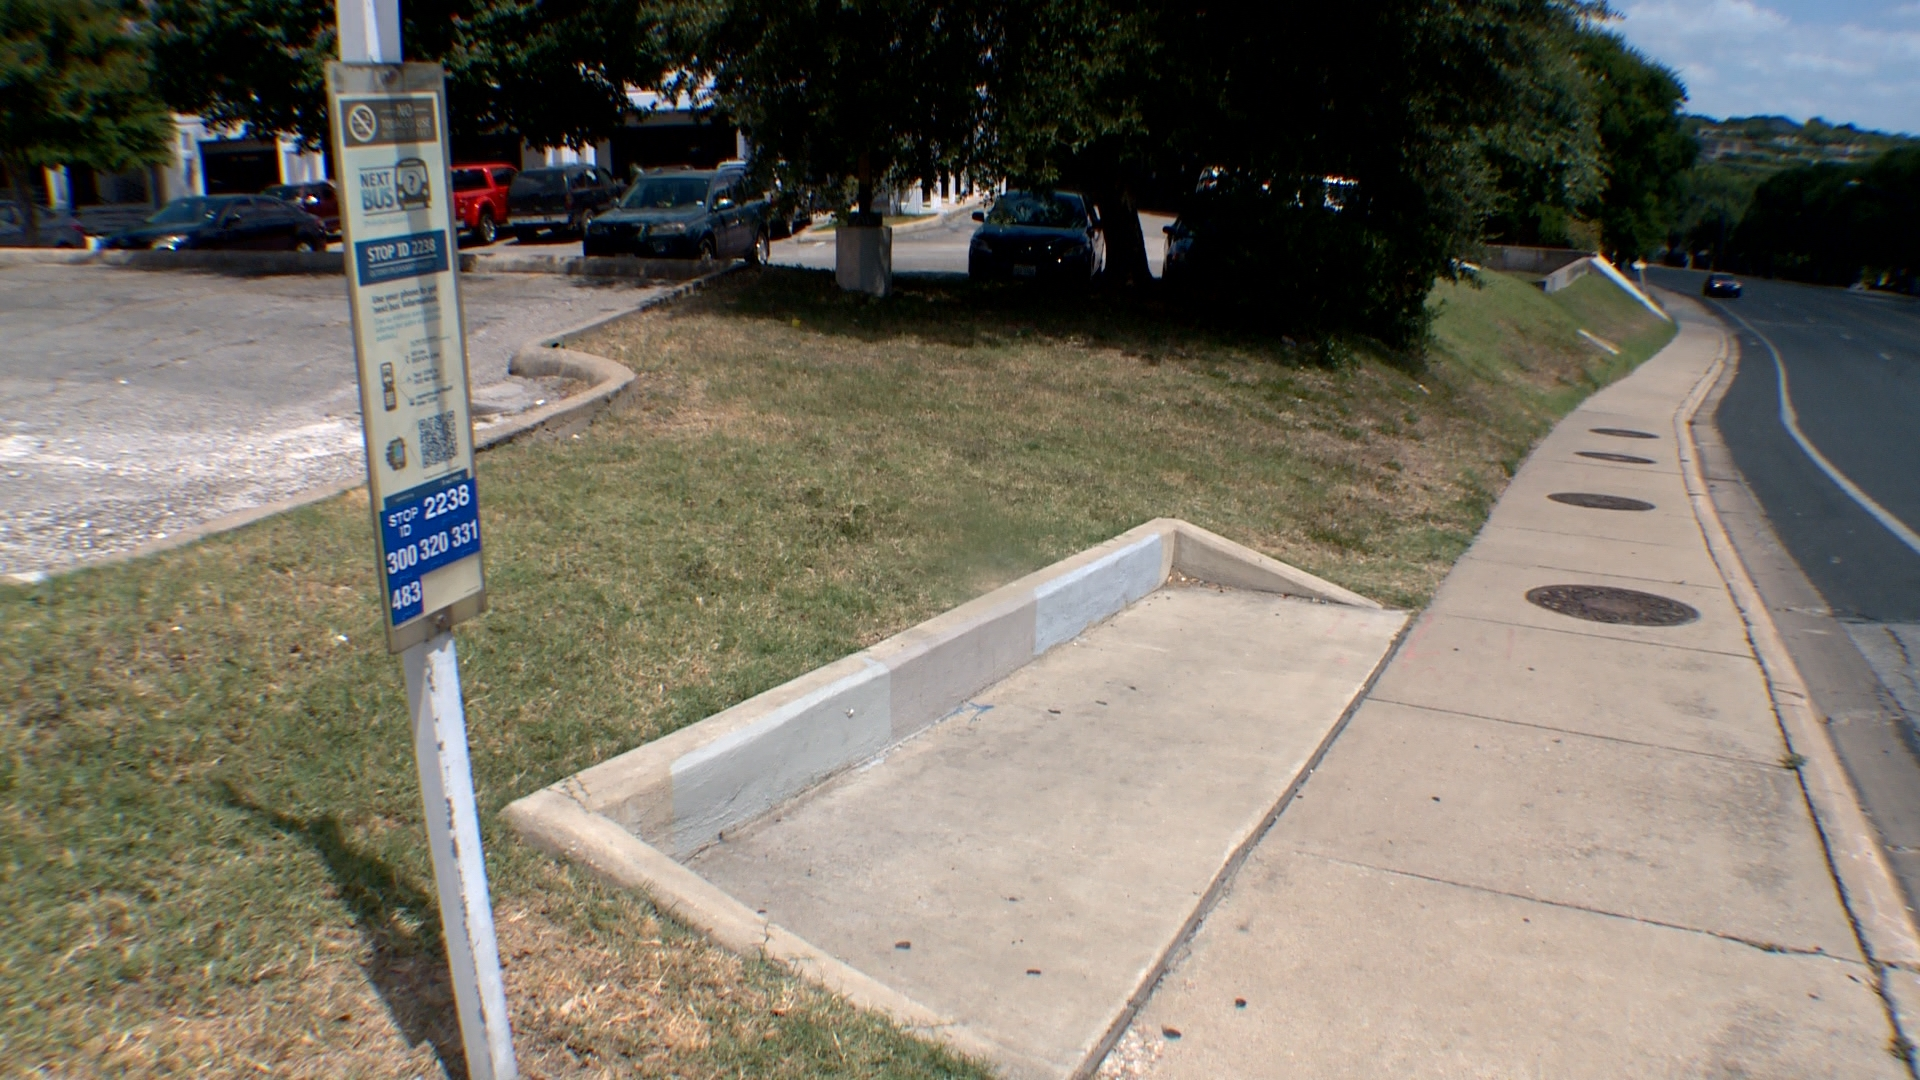 Man was robbed while waiting at this bus stop at East Oltorf Street and South Pleasant Valley (KXAN Photo/Tom Rapp)